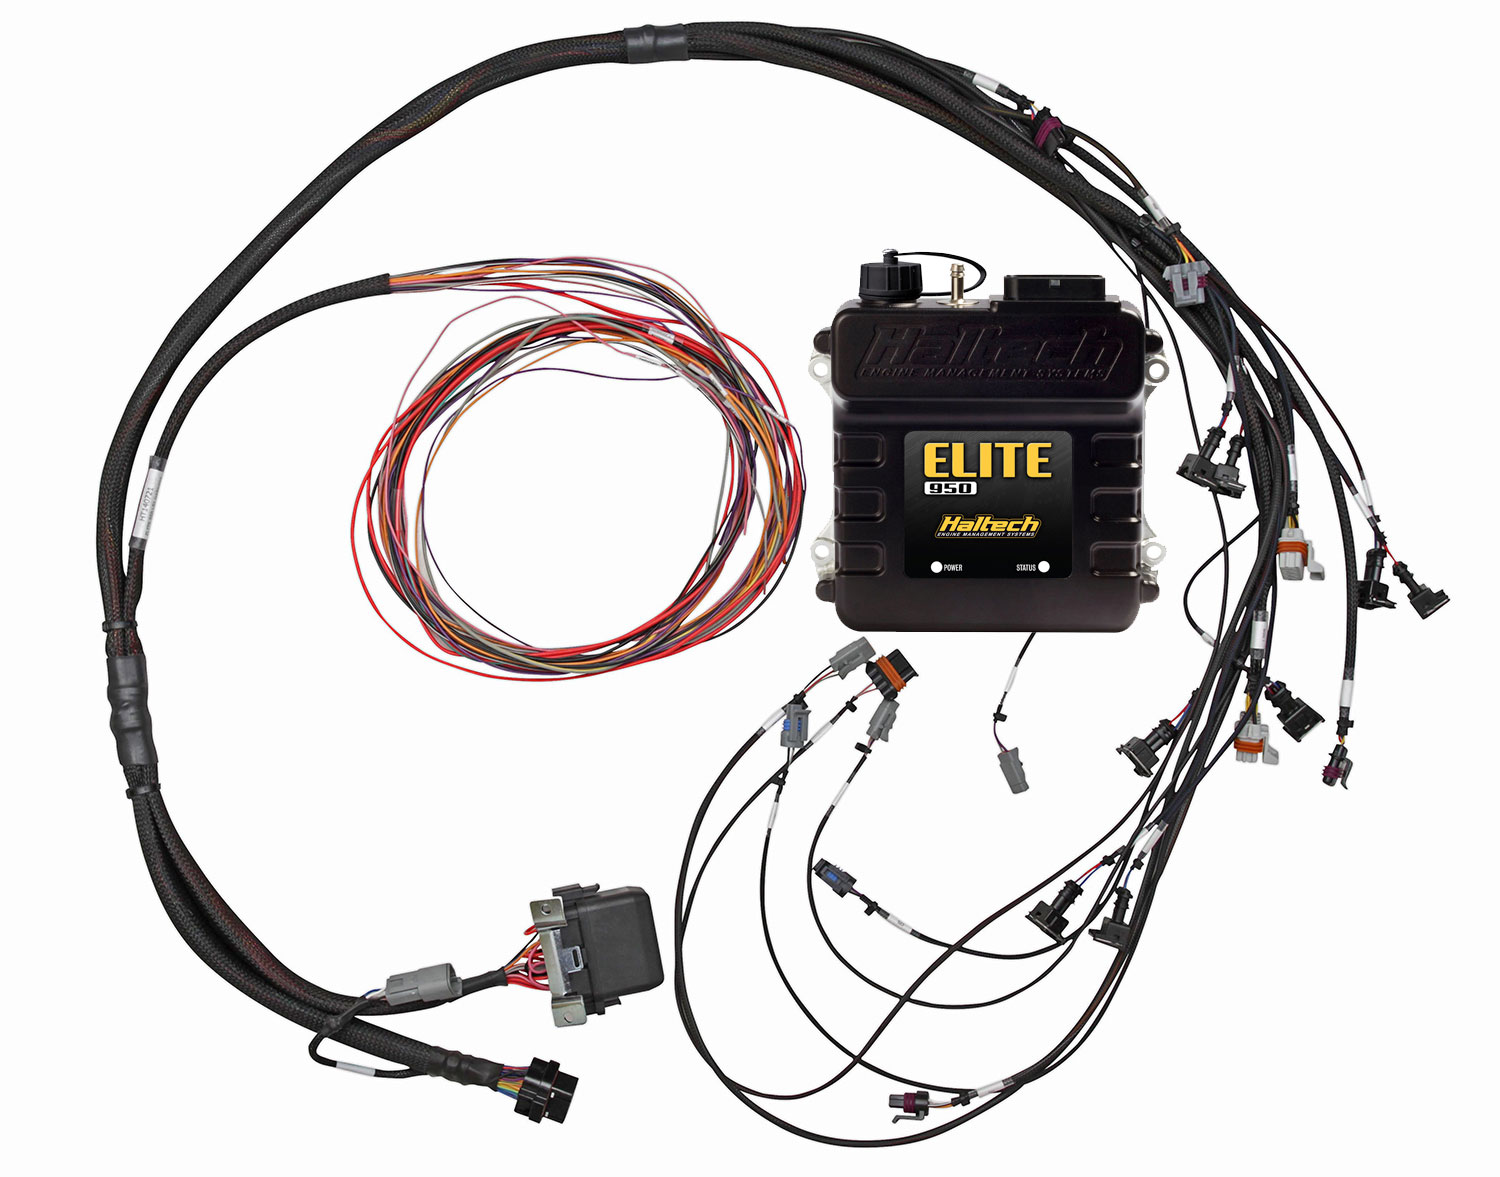 hight resolution of includes haltech elite 950 ecu terminated engine harness three circuit fuse block